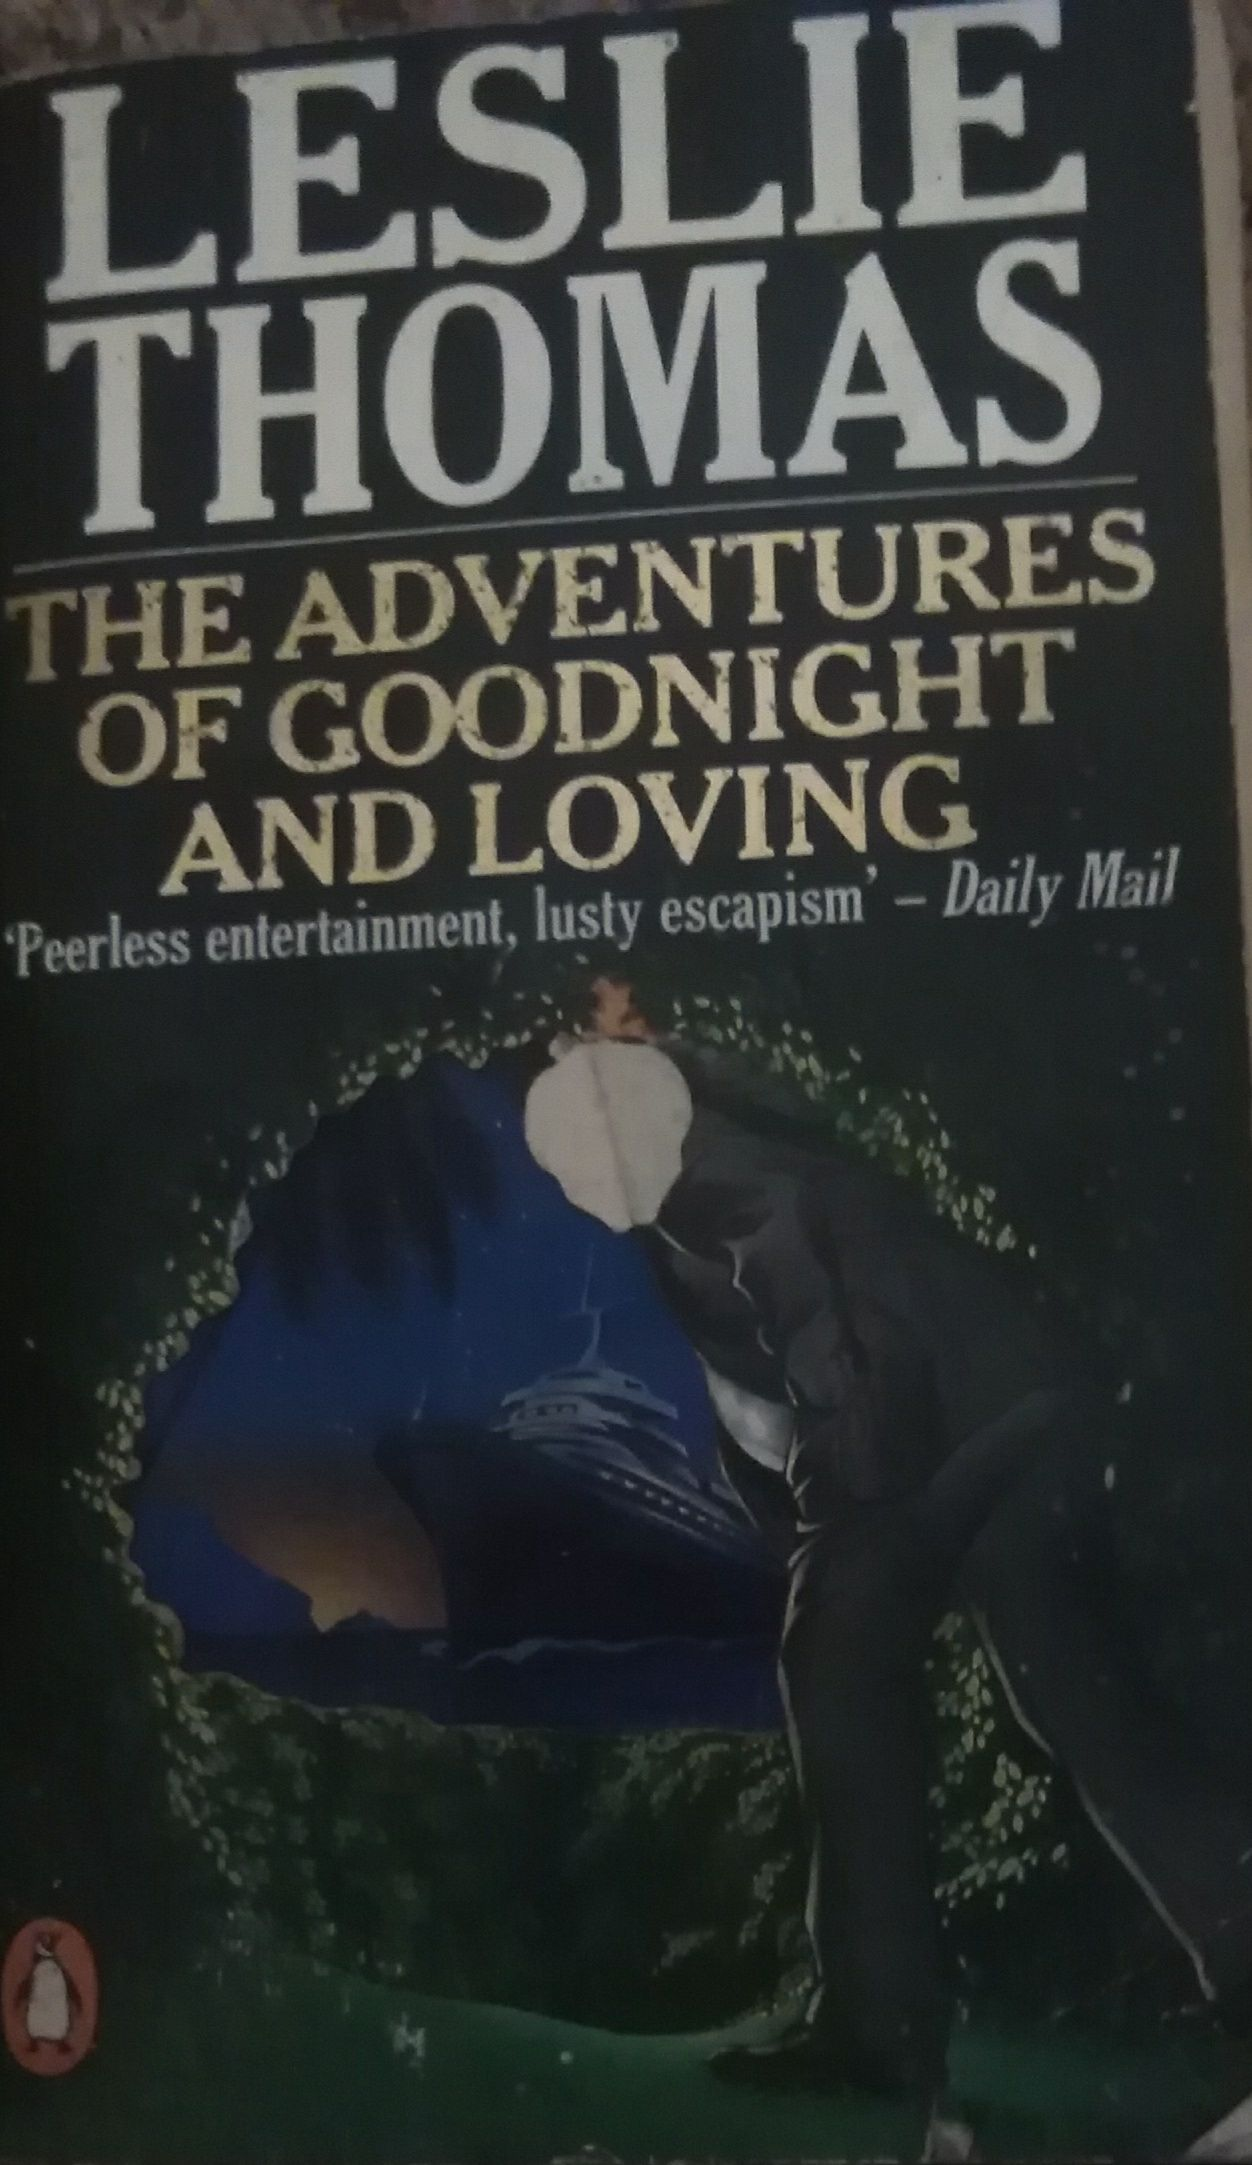 Leslie Thomas - The Adventures Of Goodnight & Loving